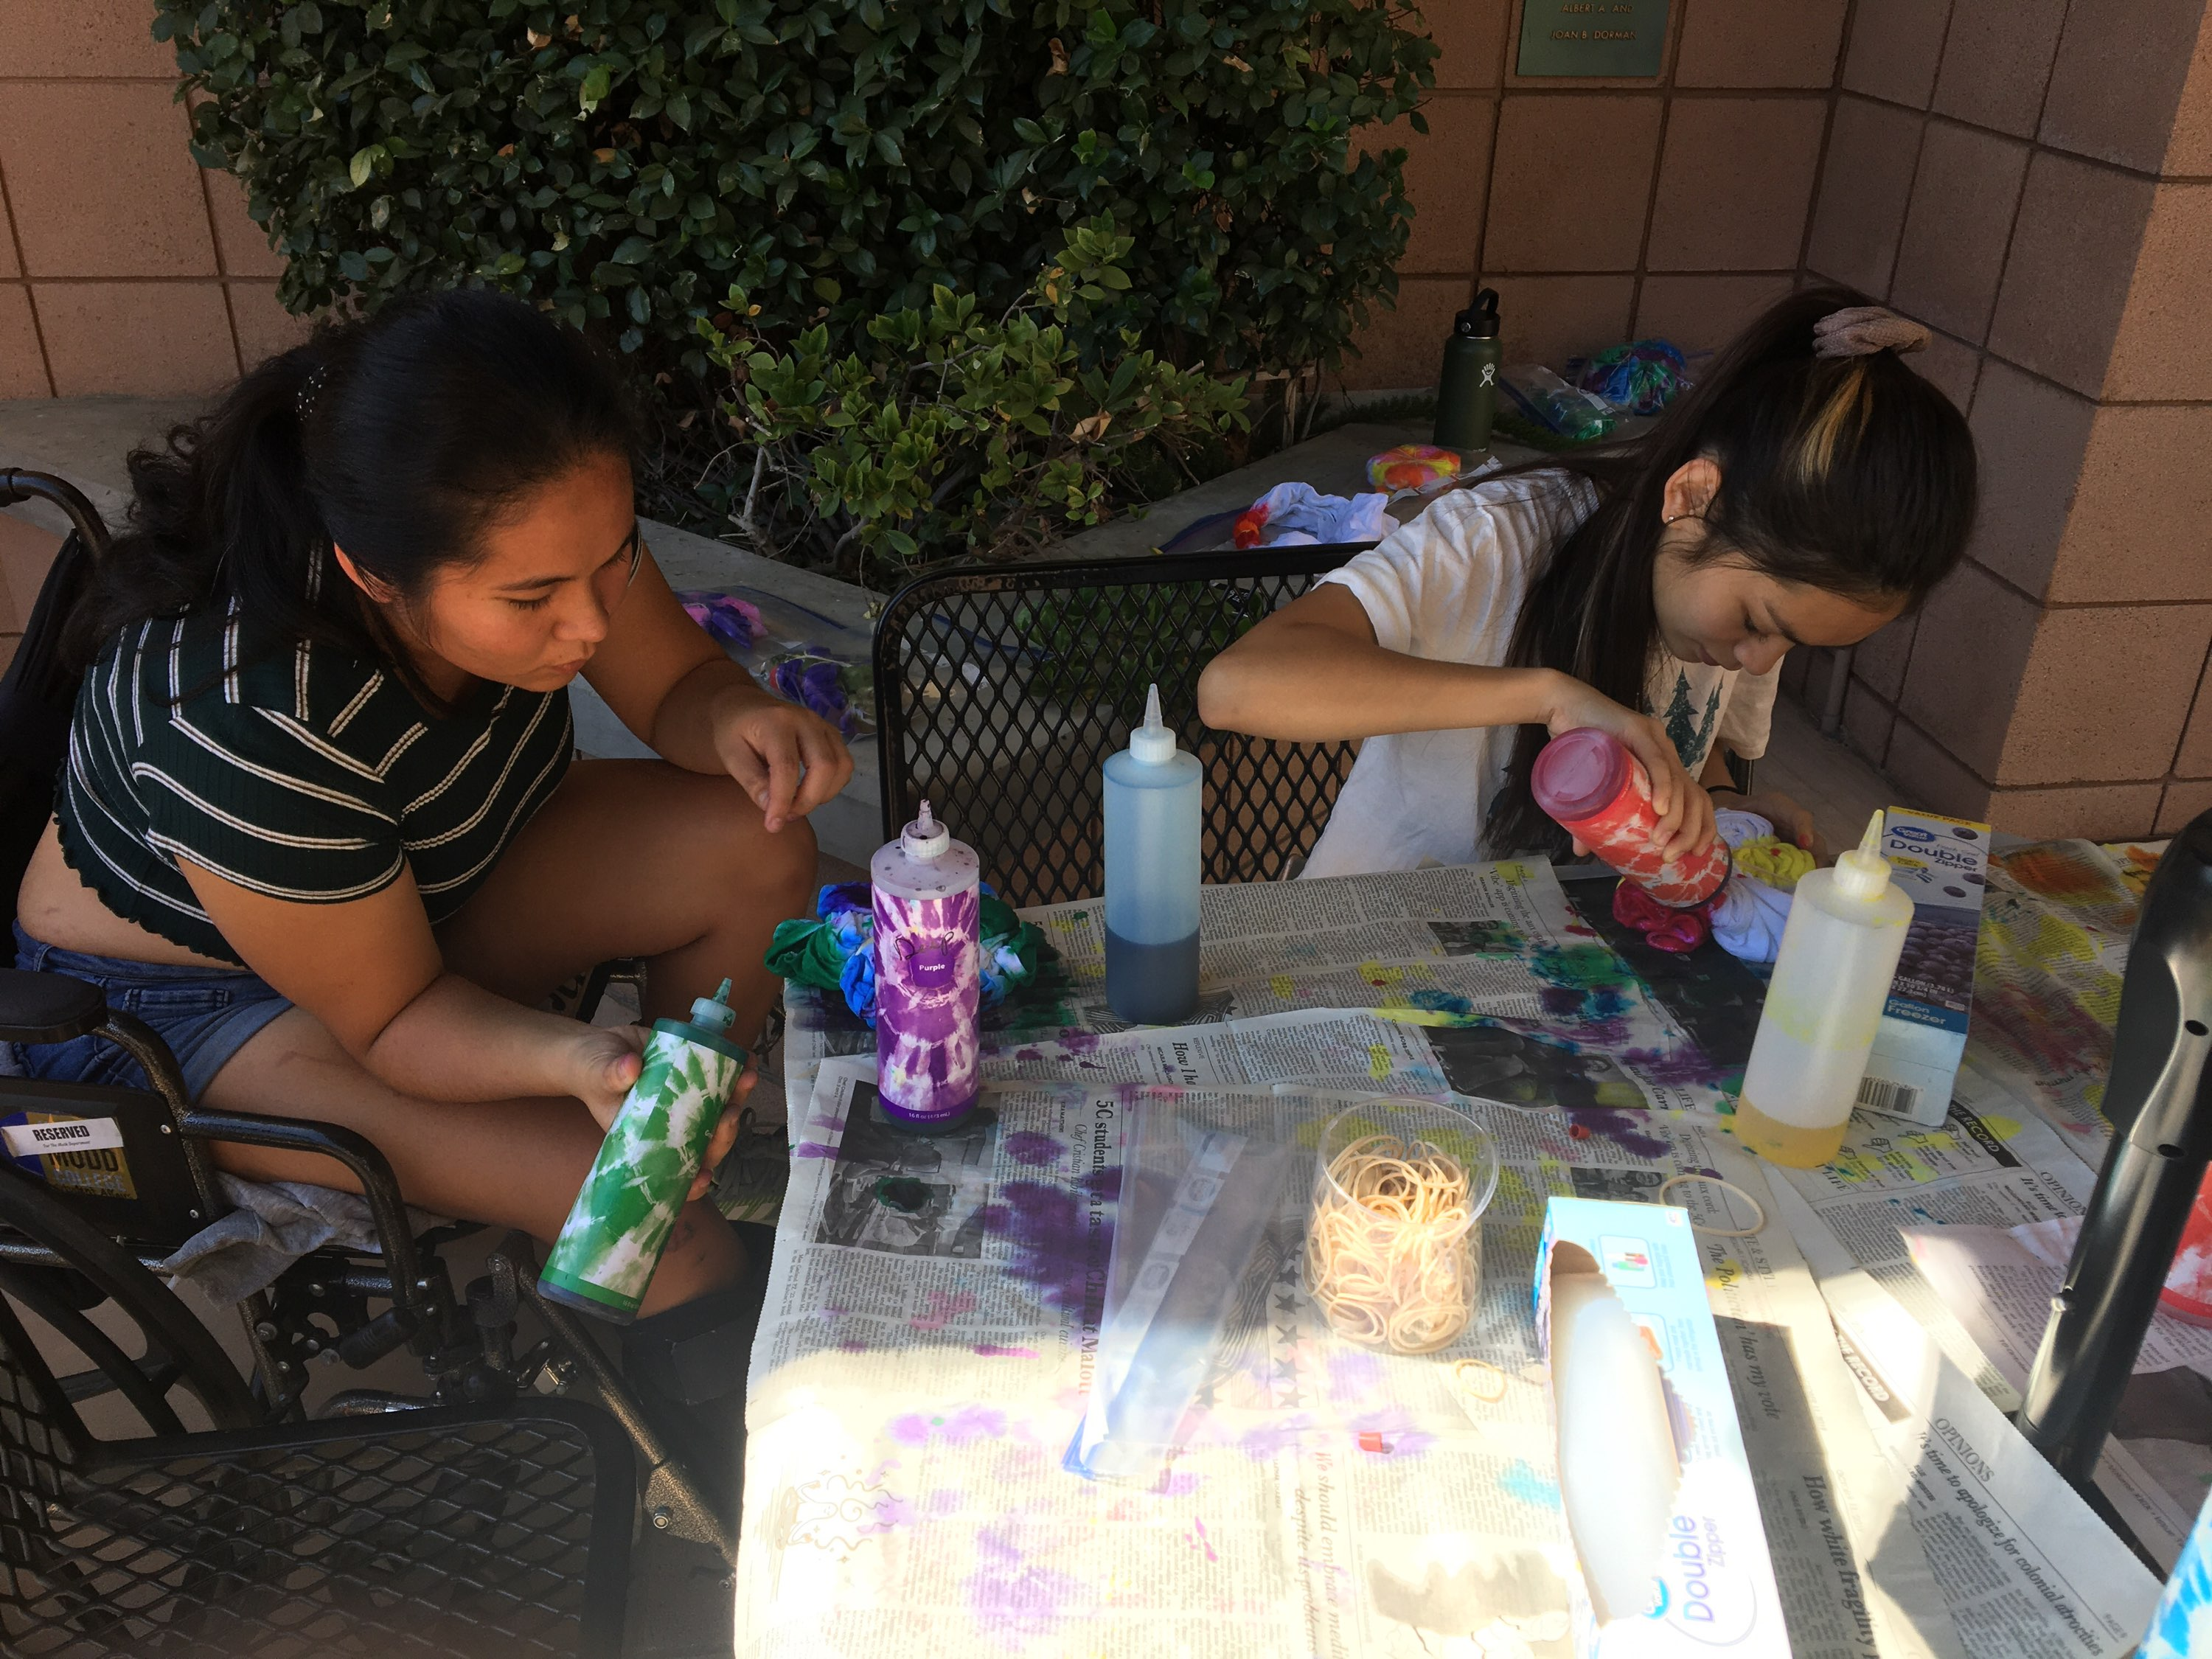 Two Mudd students sitting at a table use bottles of dye on white shirts in front of them.